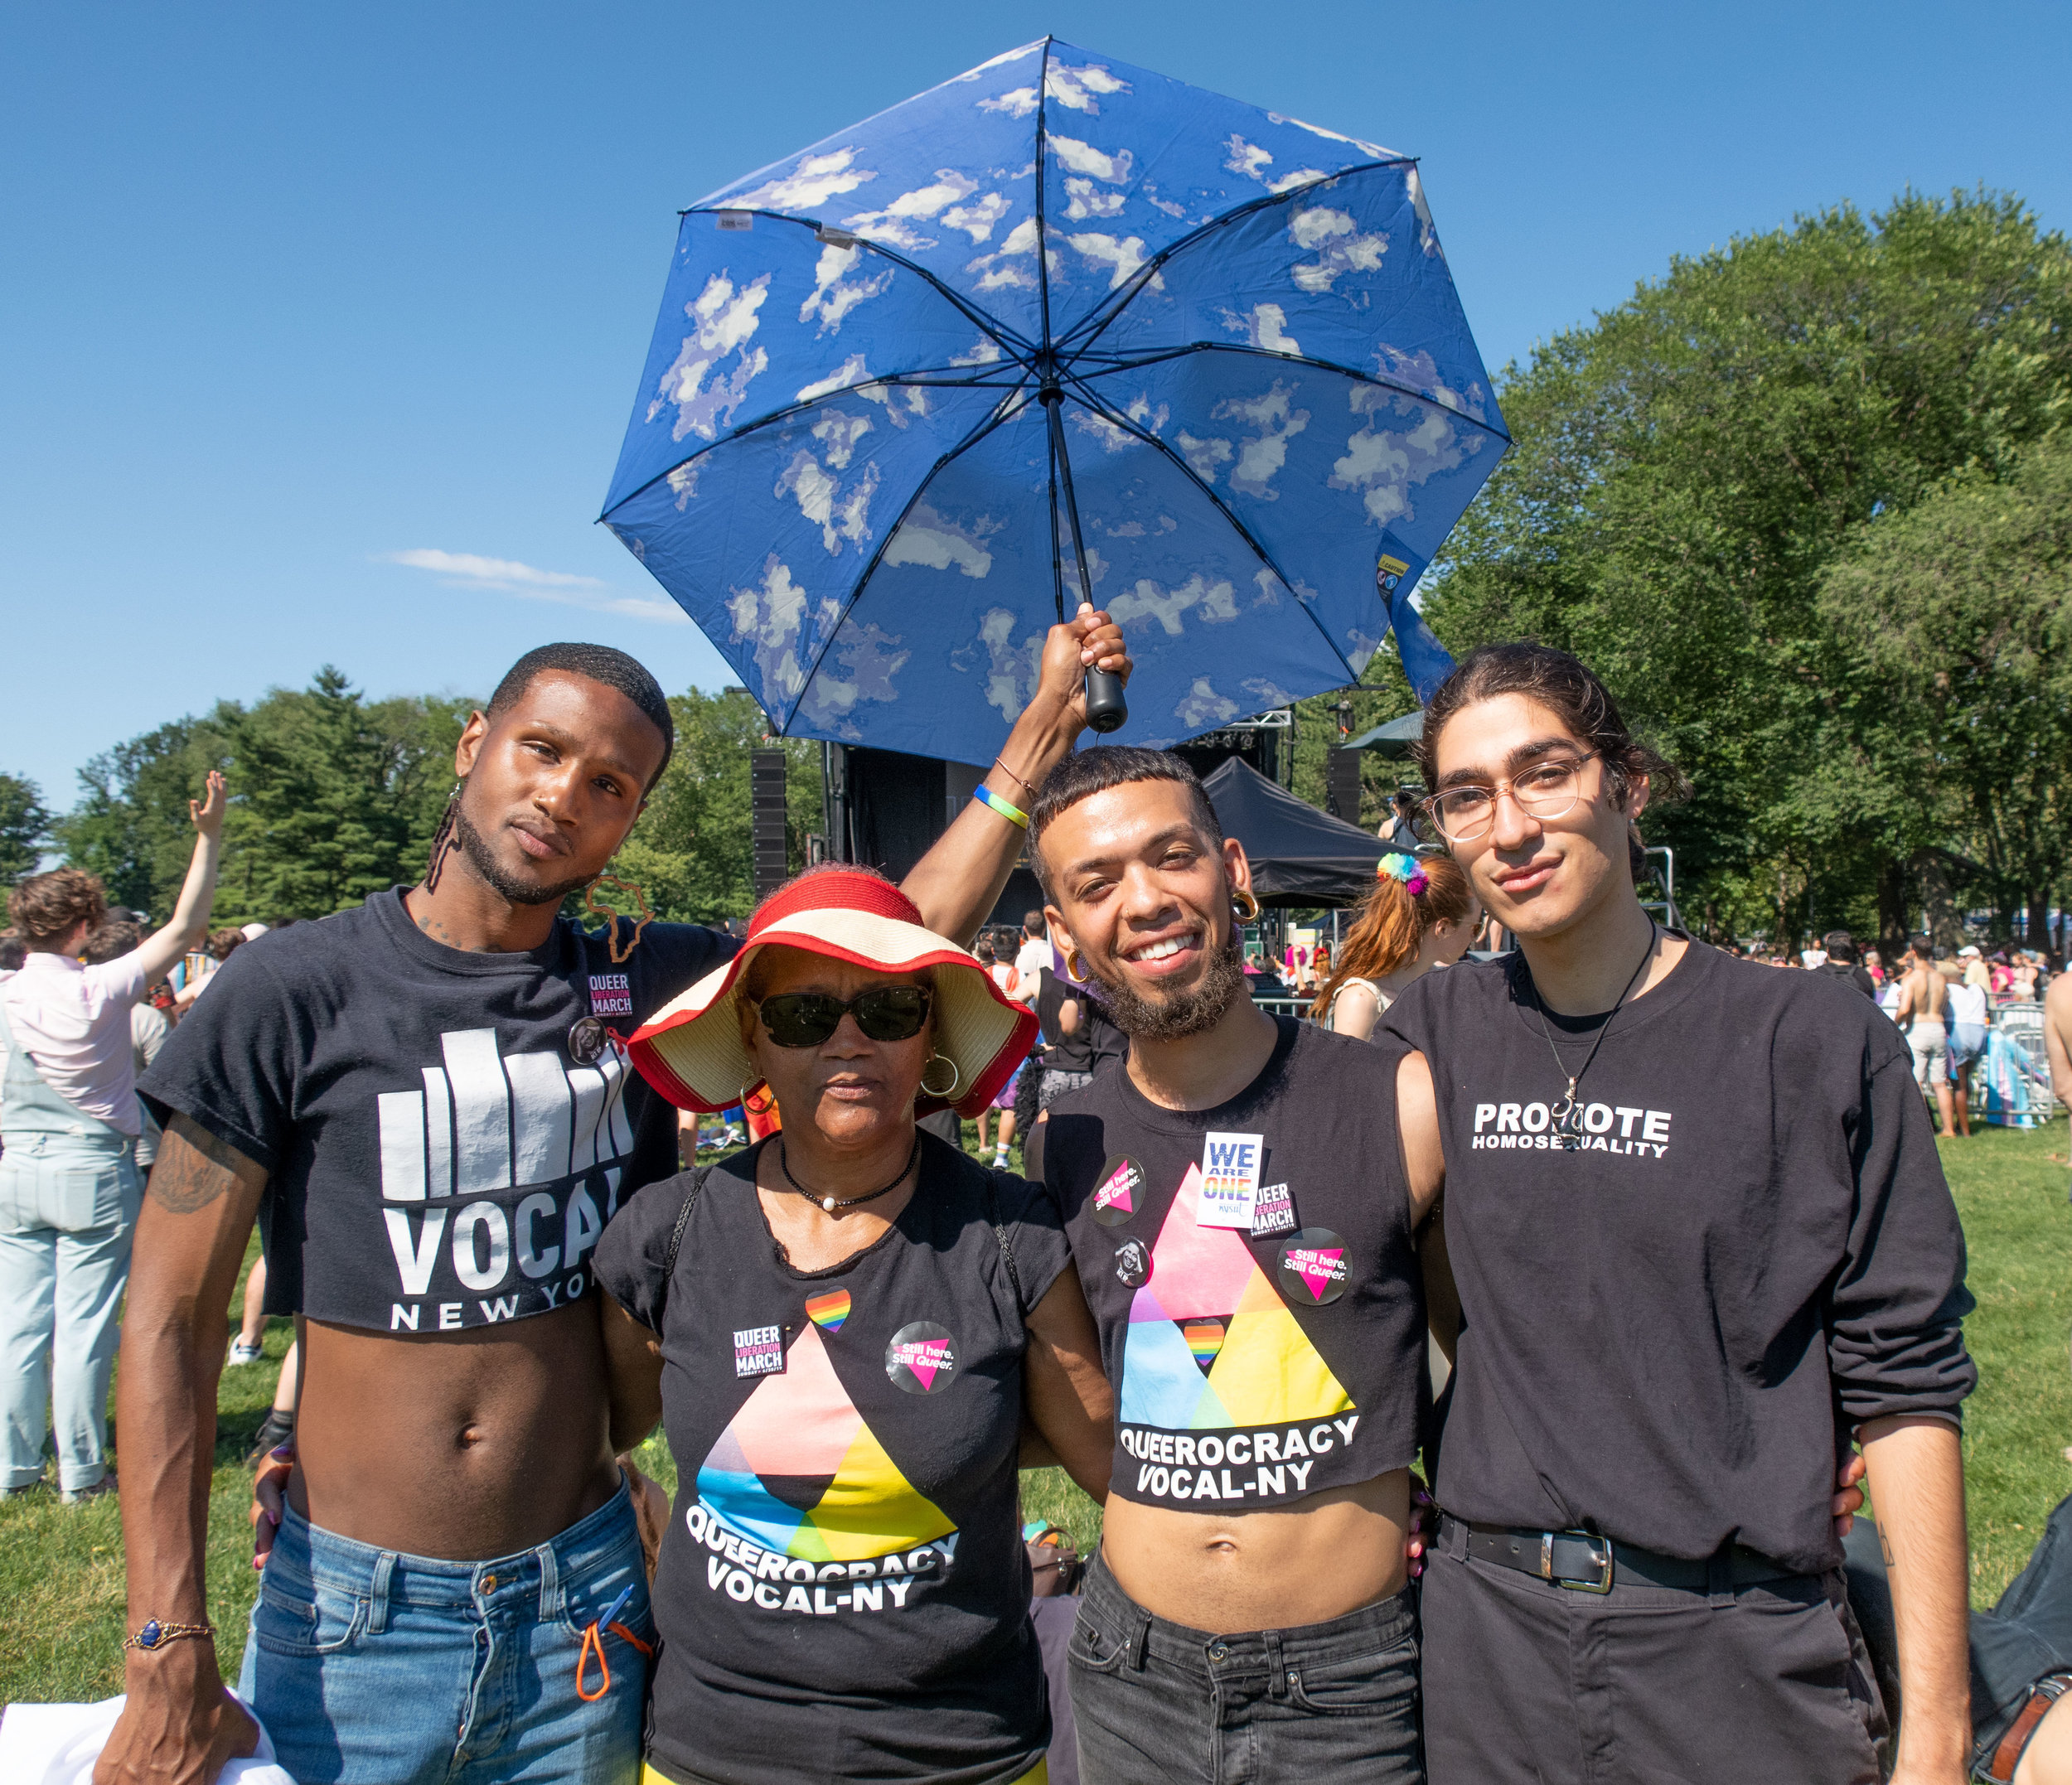 Group with Umbrella - Photo: Dave Johnson